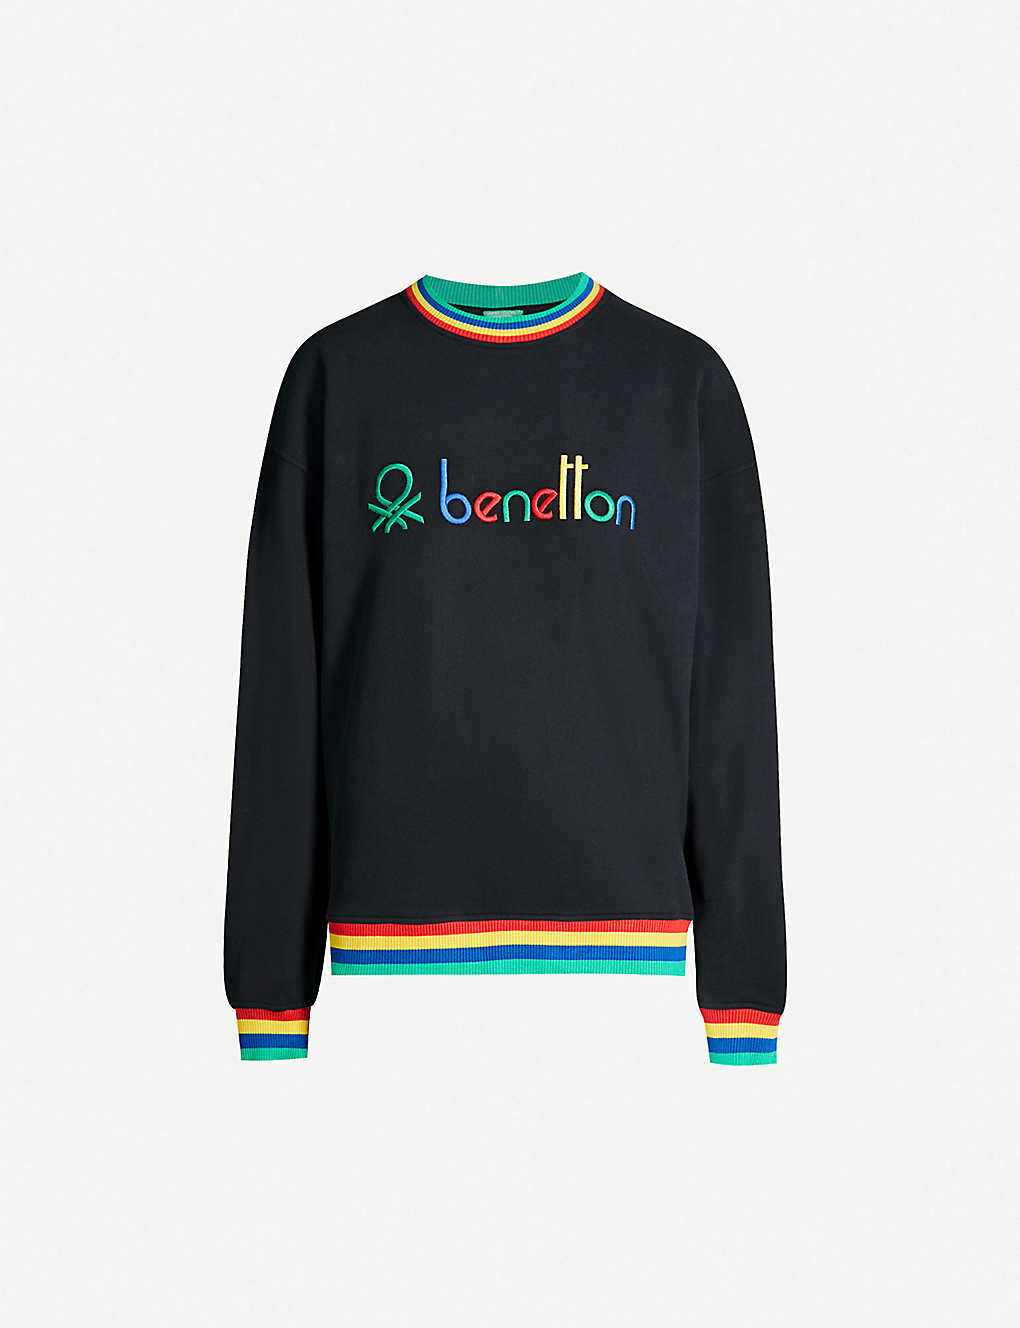 dab85aef14e BENETTON - Unisex rainbow logo-embroidered cotton-jersey sweatshirt ...